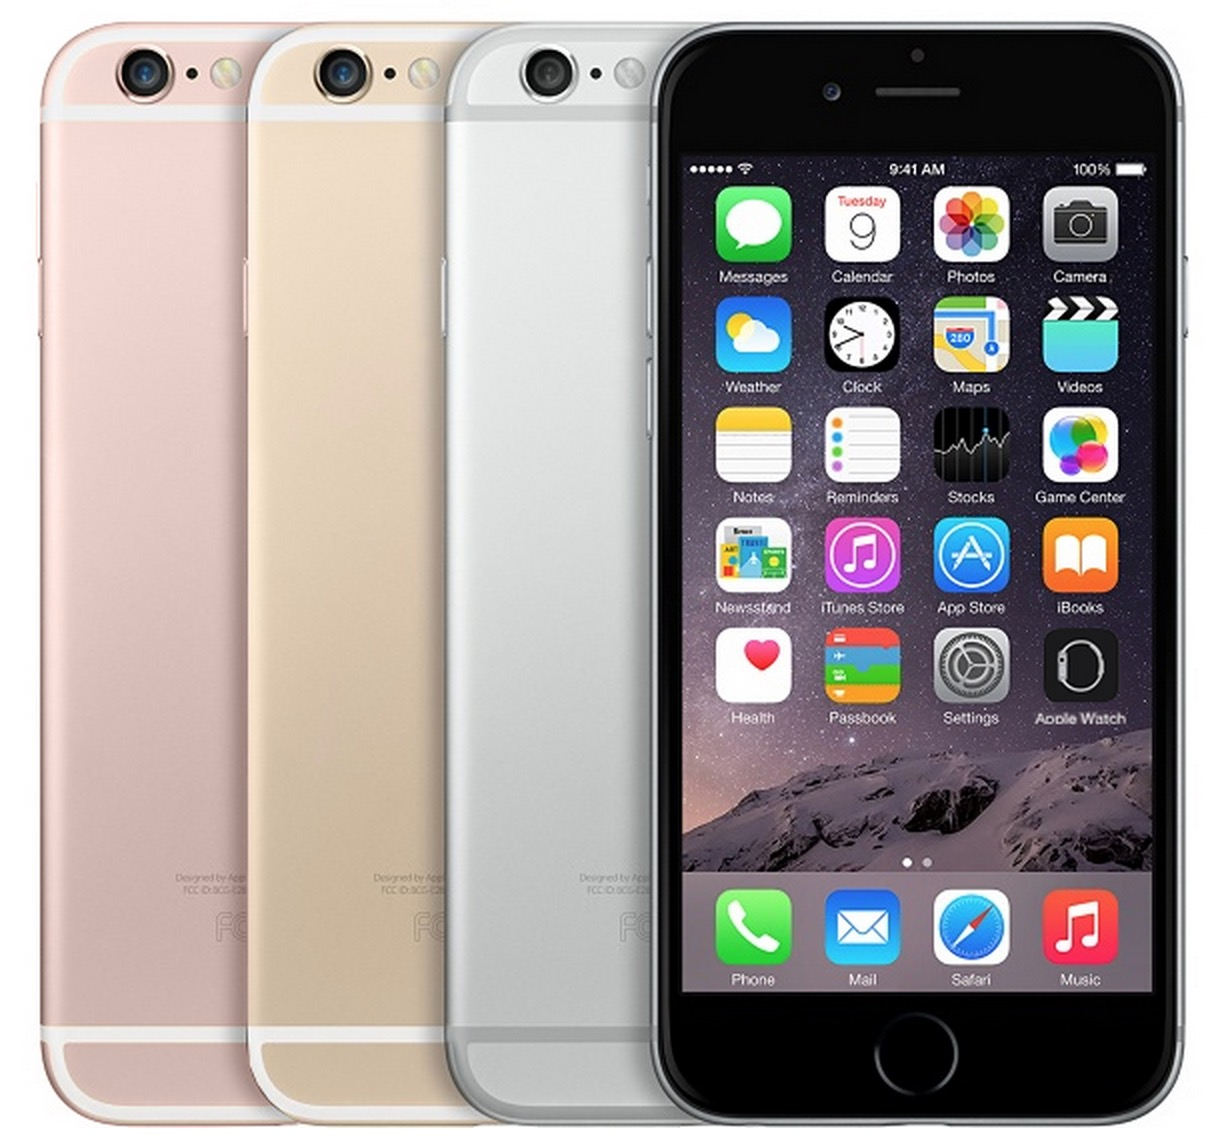 iphone 6s specification iphone 6s rumors amp specs roundup 11504